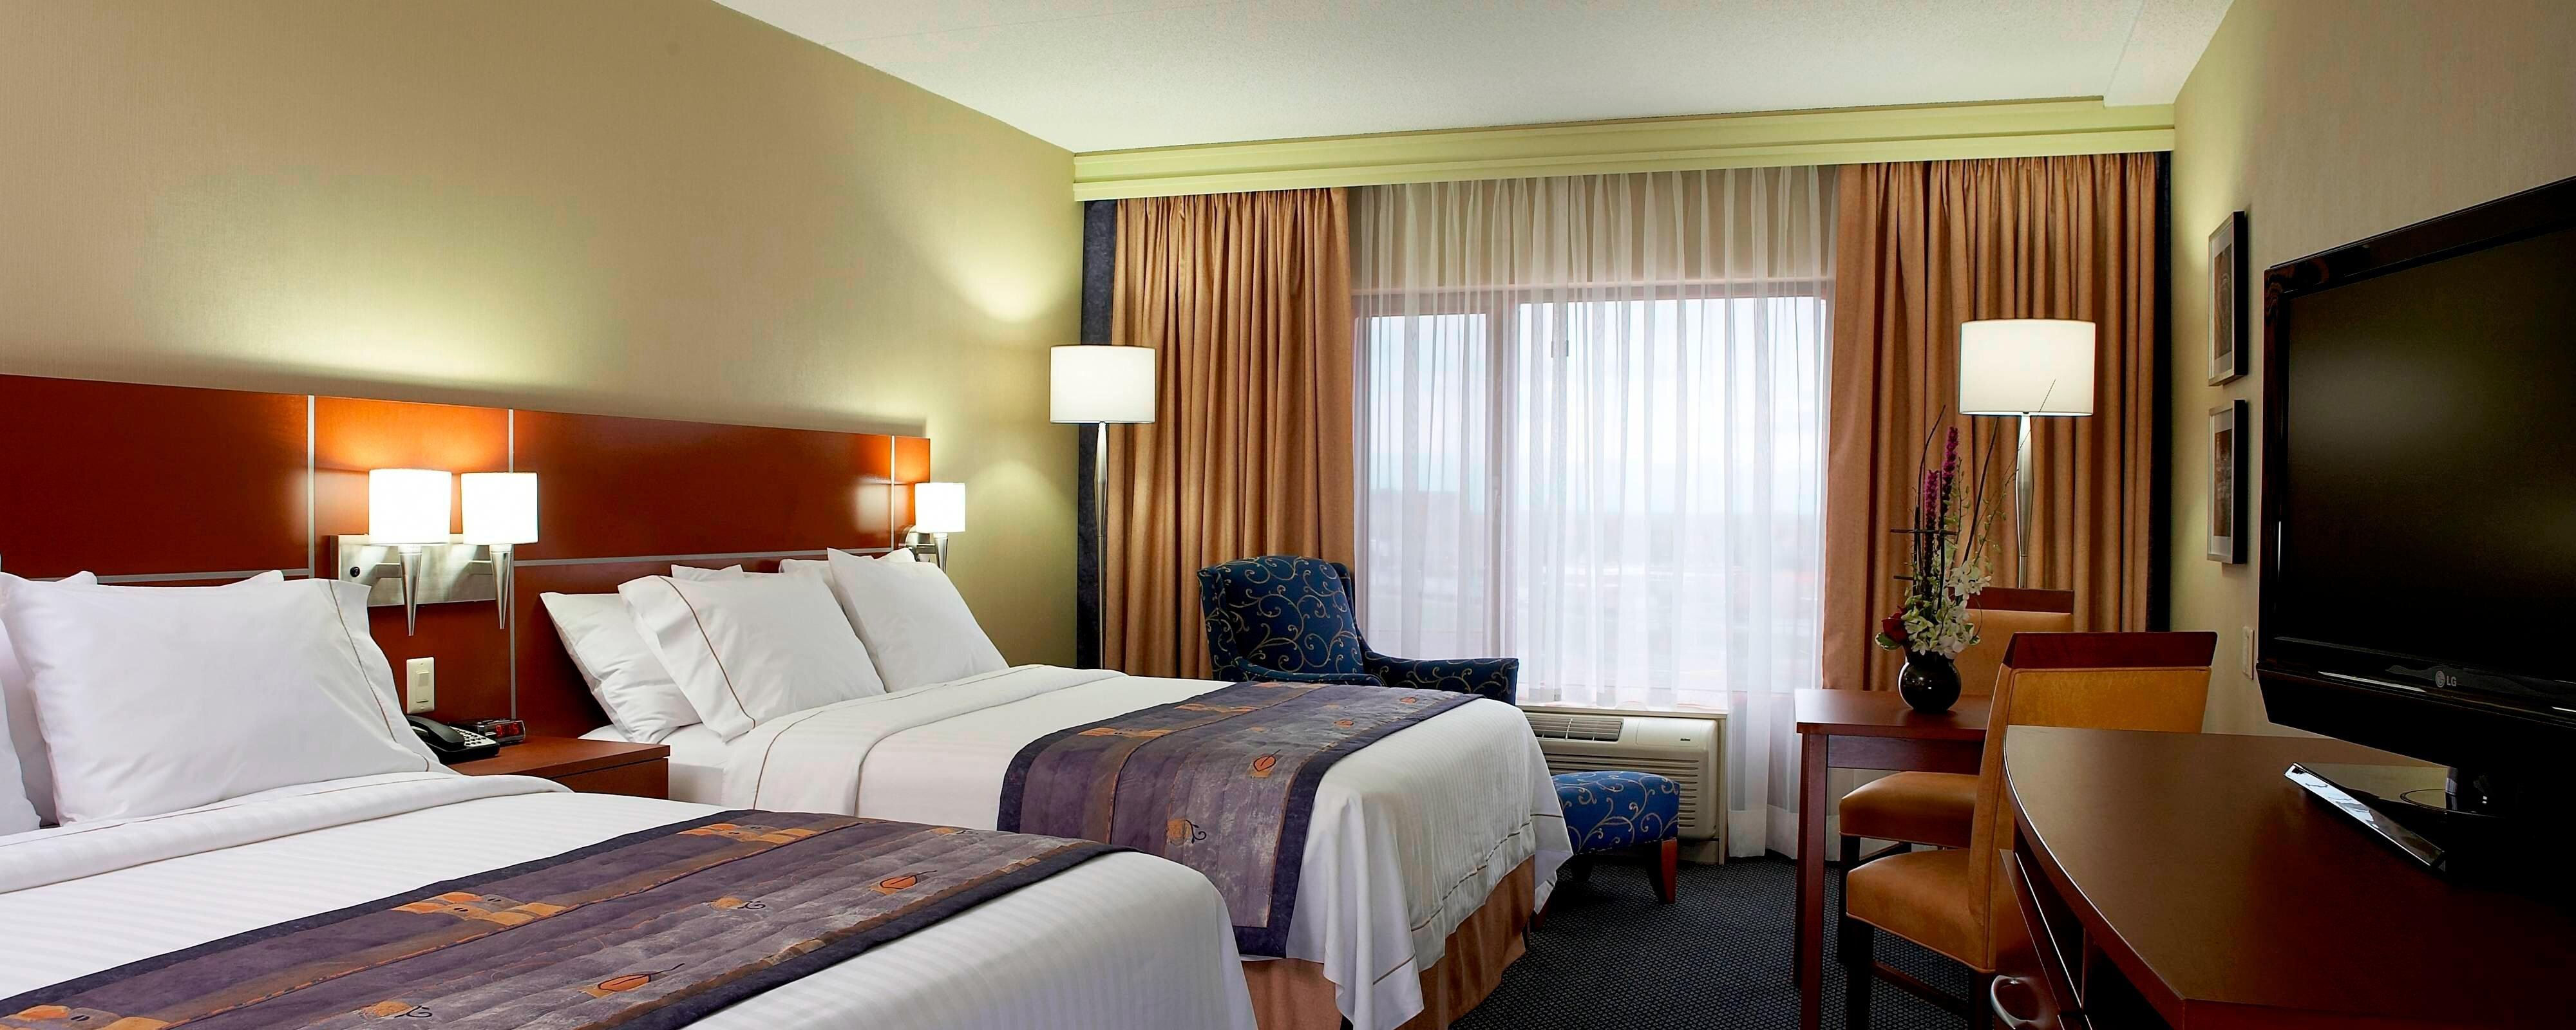 Dorval airport hotel guest rooms